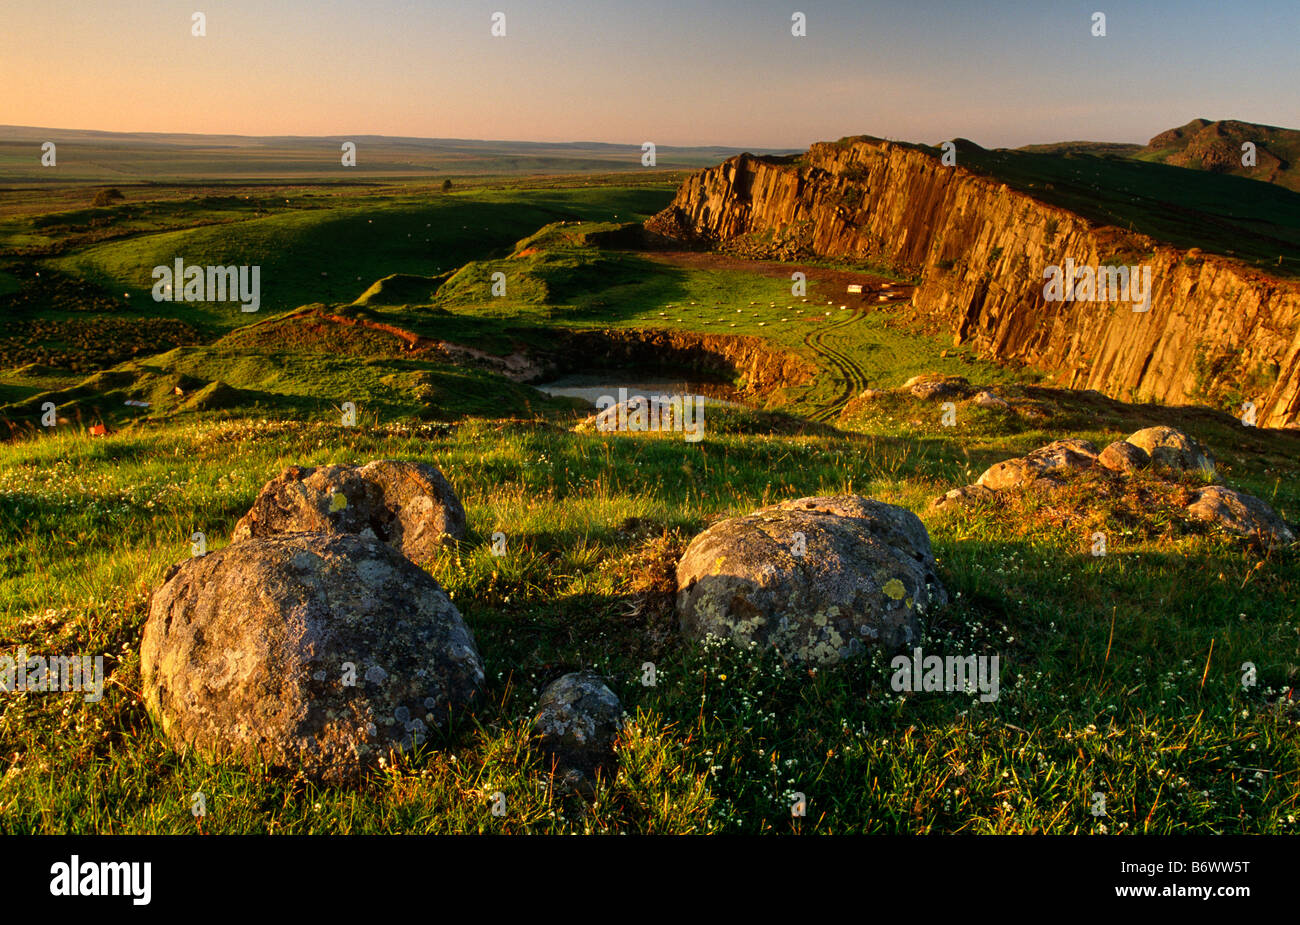 Hadrian's Wall at sunset at Walltown Crags near Greenhead, Hadrian's Wall National Trail, Northumberland - Stock Image